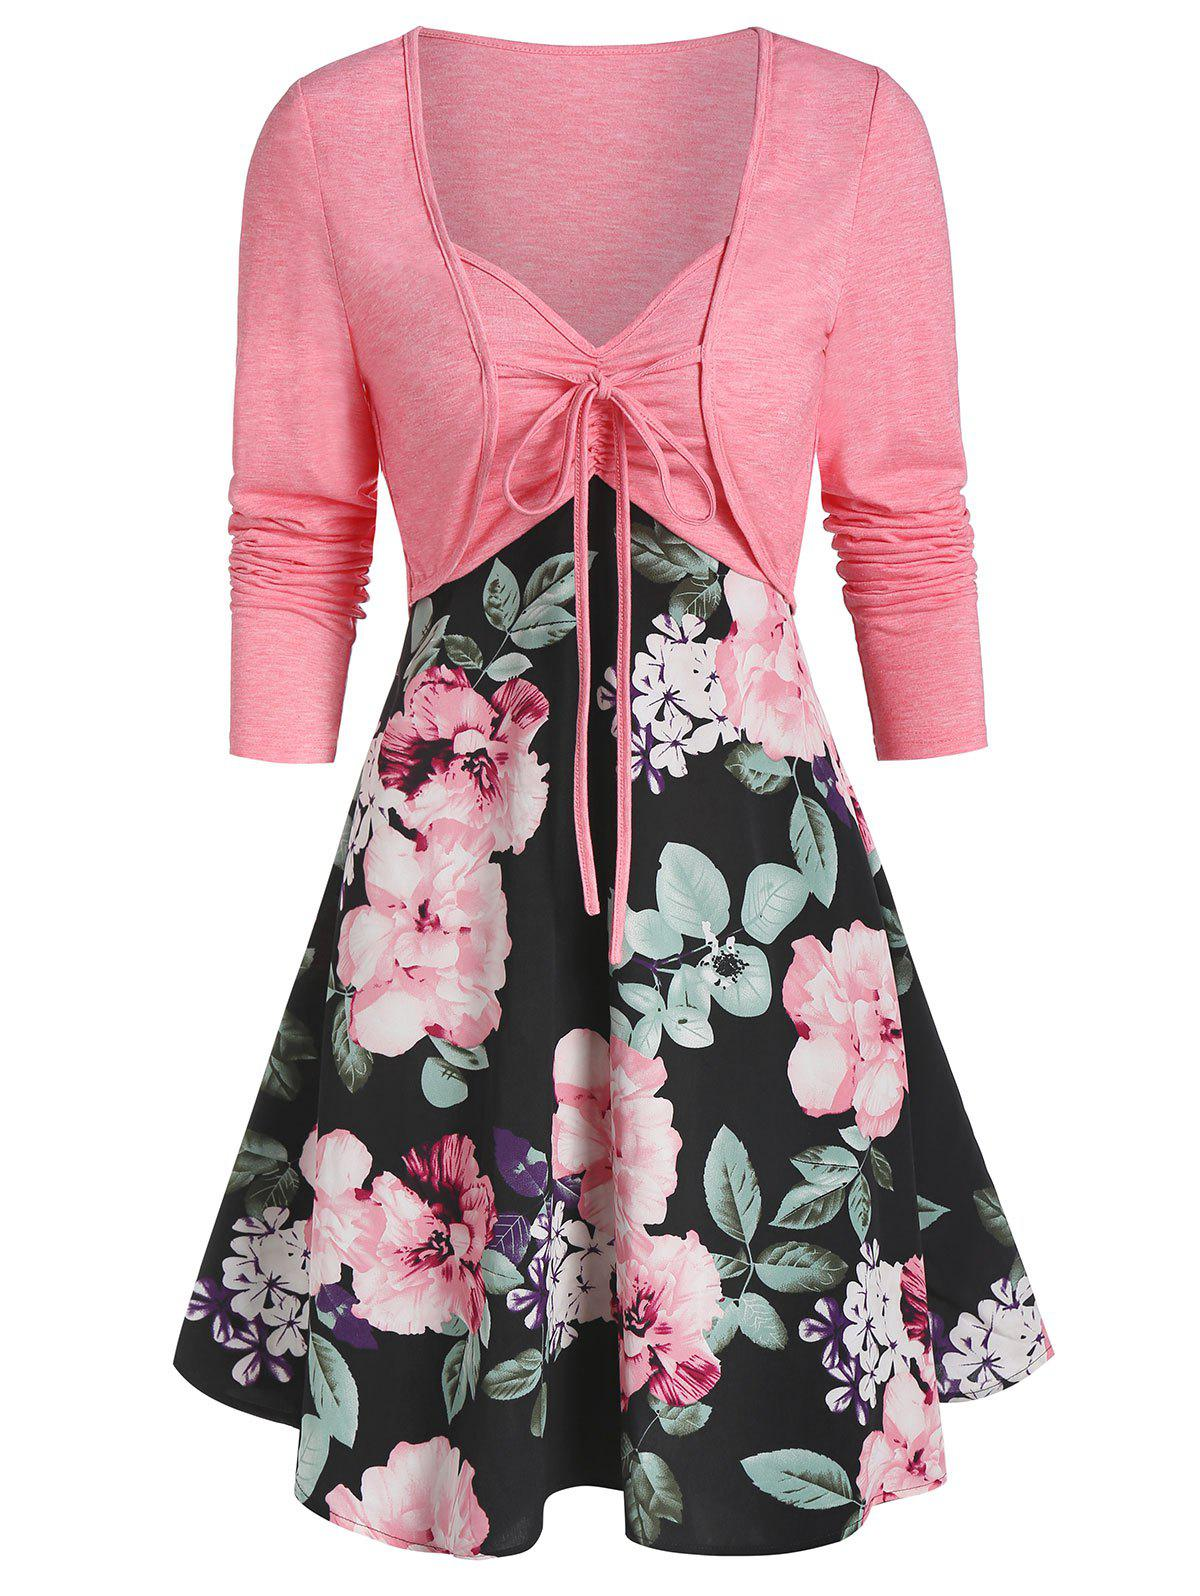 Hot Sweetheart Collar Floral Print Dress with Tie T Shirt